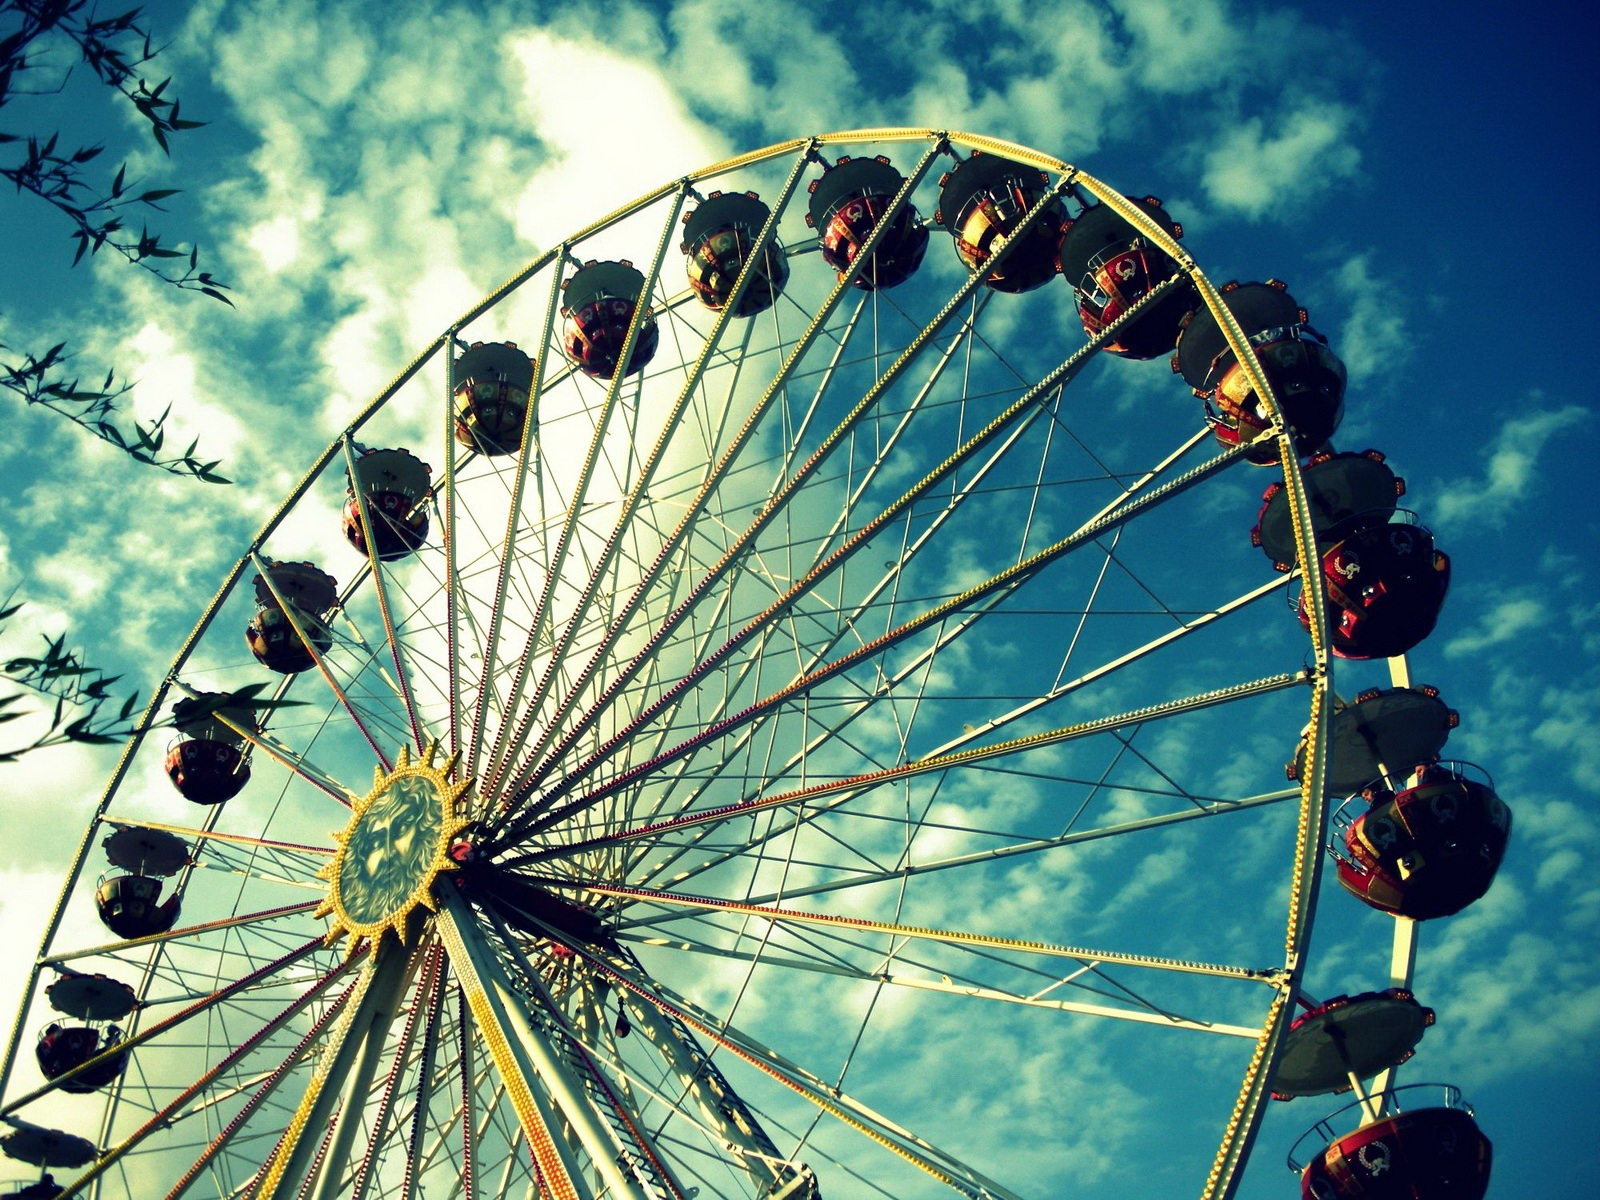 Free Ferris Wheel Wallpaper